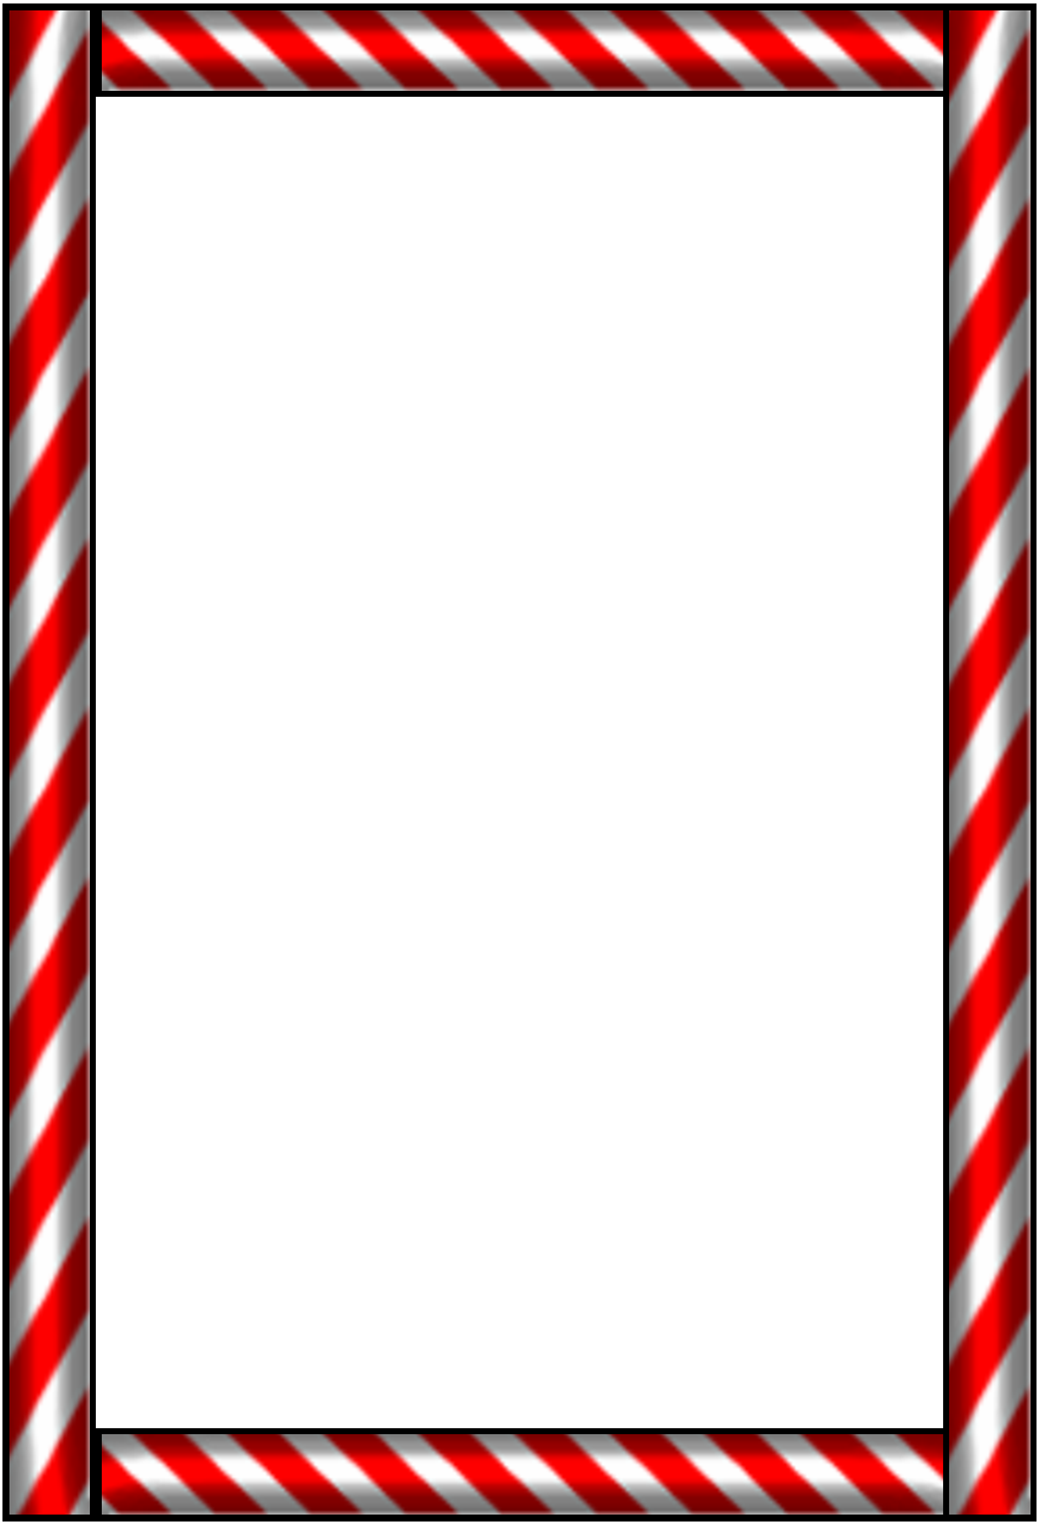 hight resolution of candy cane clip art borders google search